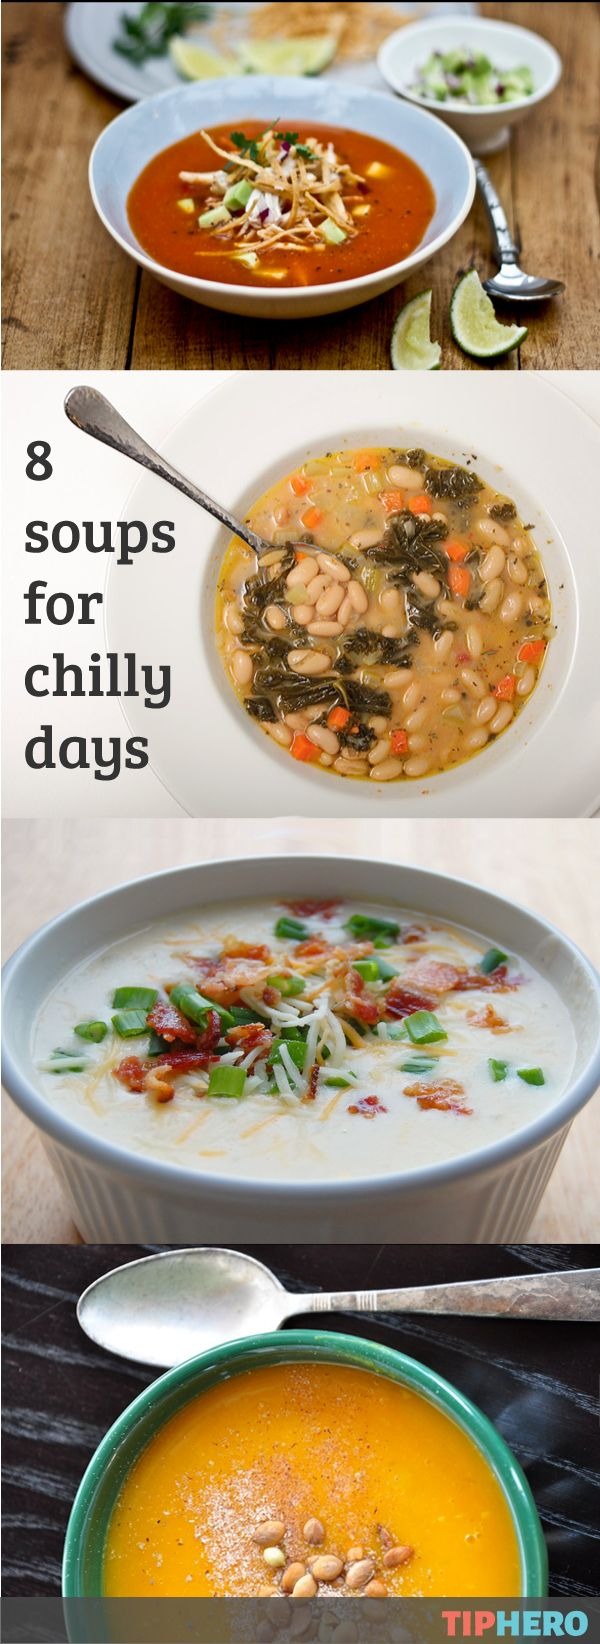 8 Soup Recipes to Warm Up a Chilly Day | Tis' the season for soup! So here's a delicious collection of some of our favorites from the classic chicken noodle to Tuscan bean to pasta fagioli and more!